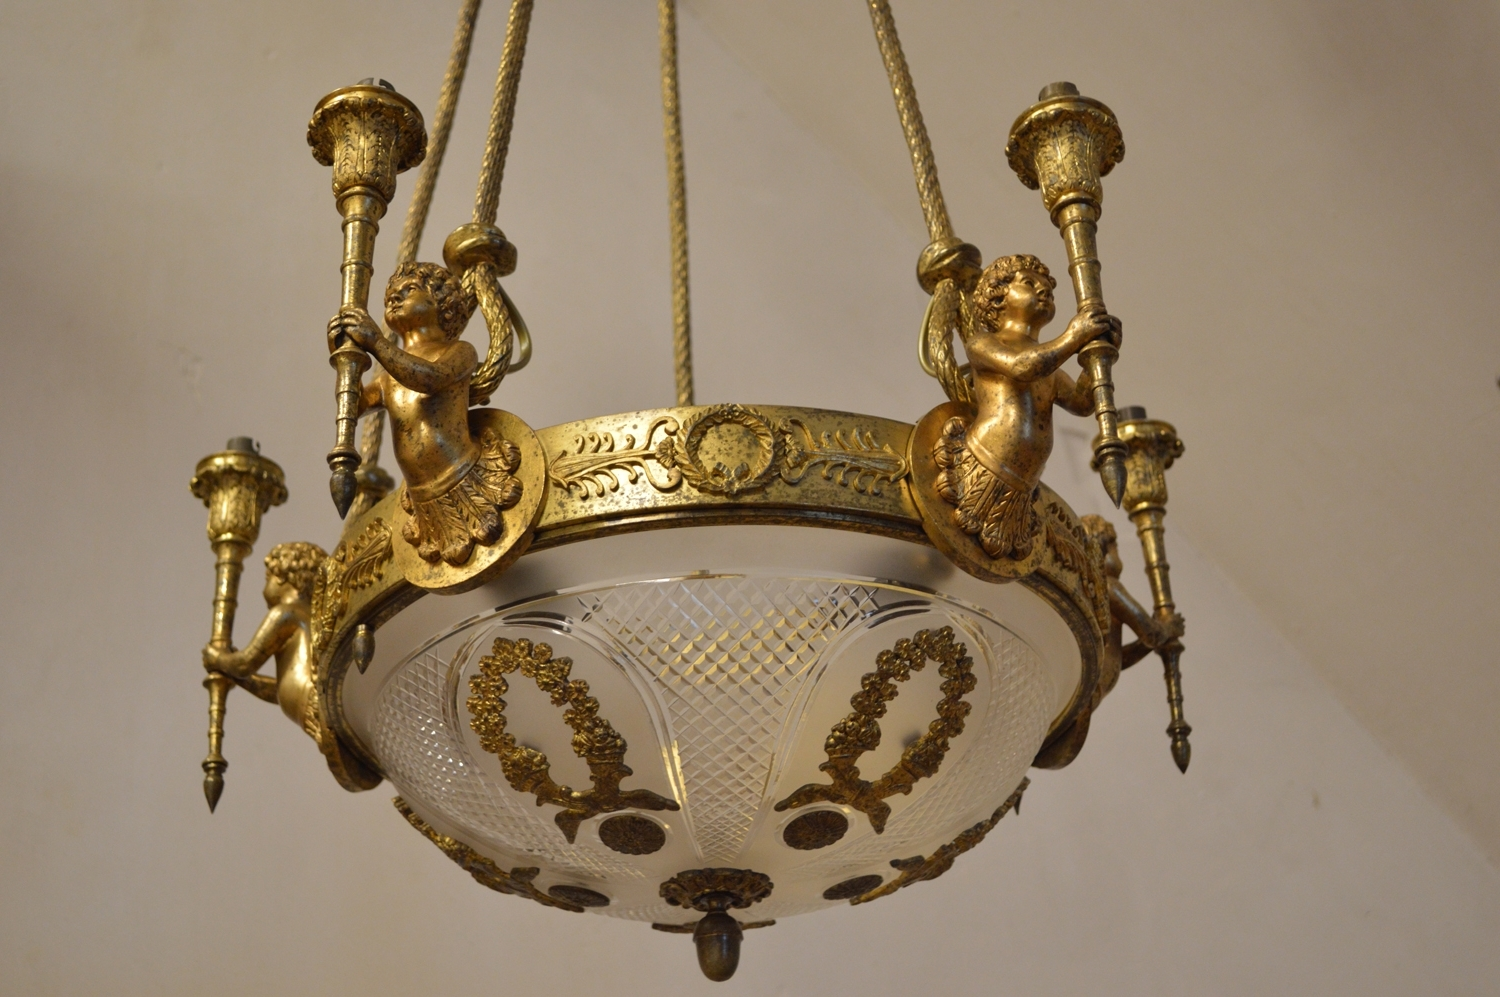 Antique Louis Xvi Style Chandelier With Cherubs In Gilt Bronze For With Most Popular Antique Looking Chandeliers (View 6 of 15)